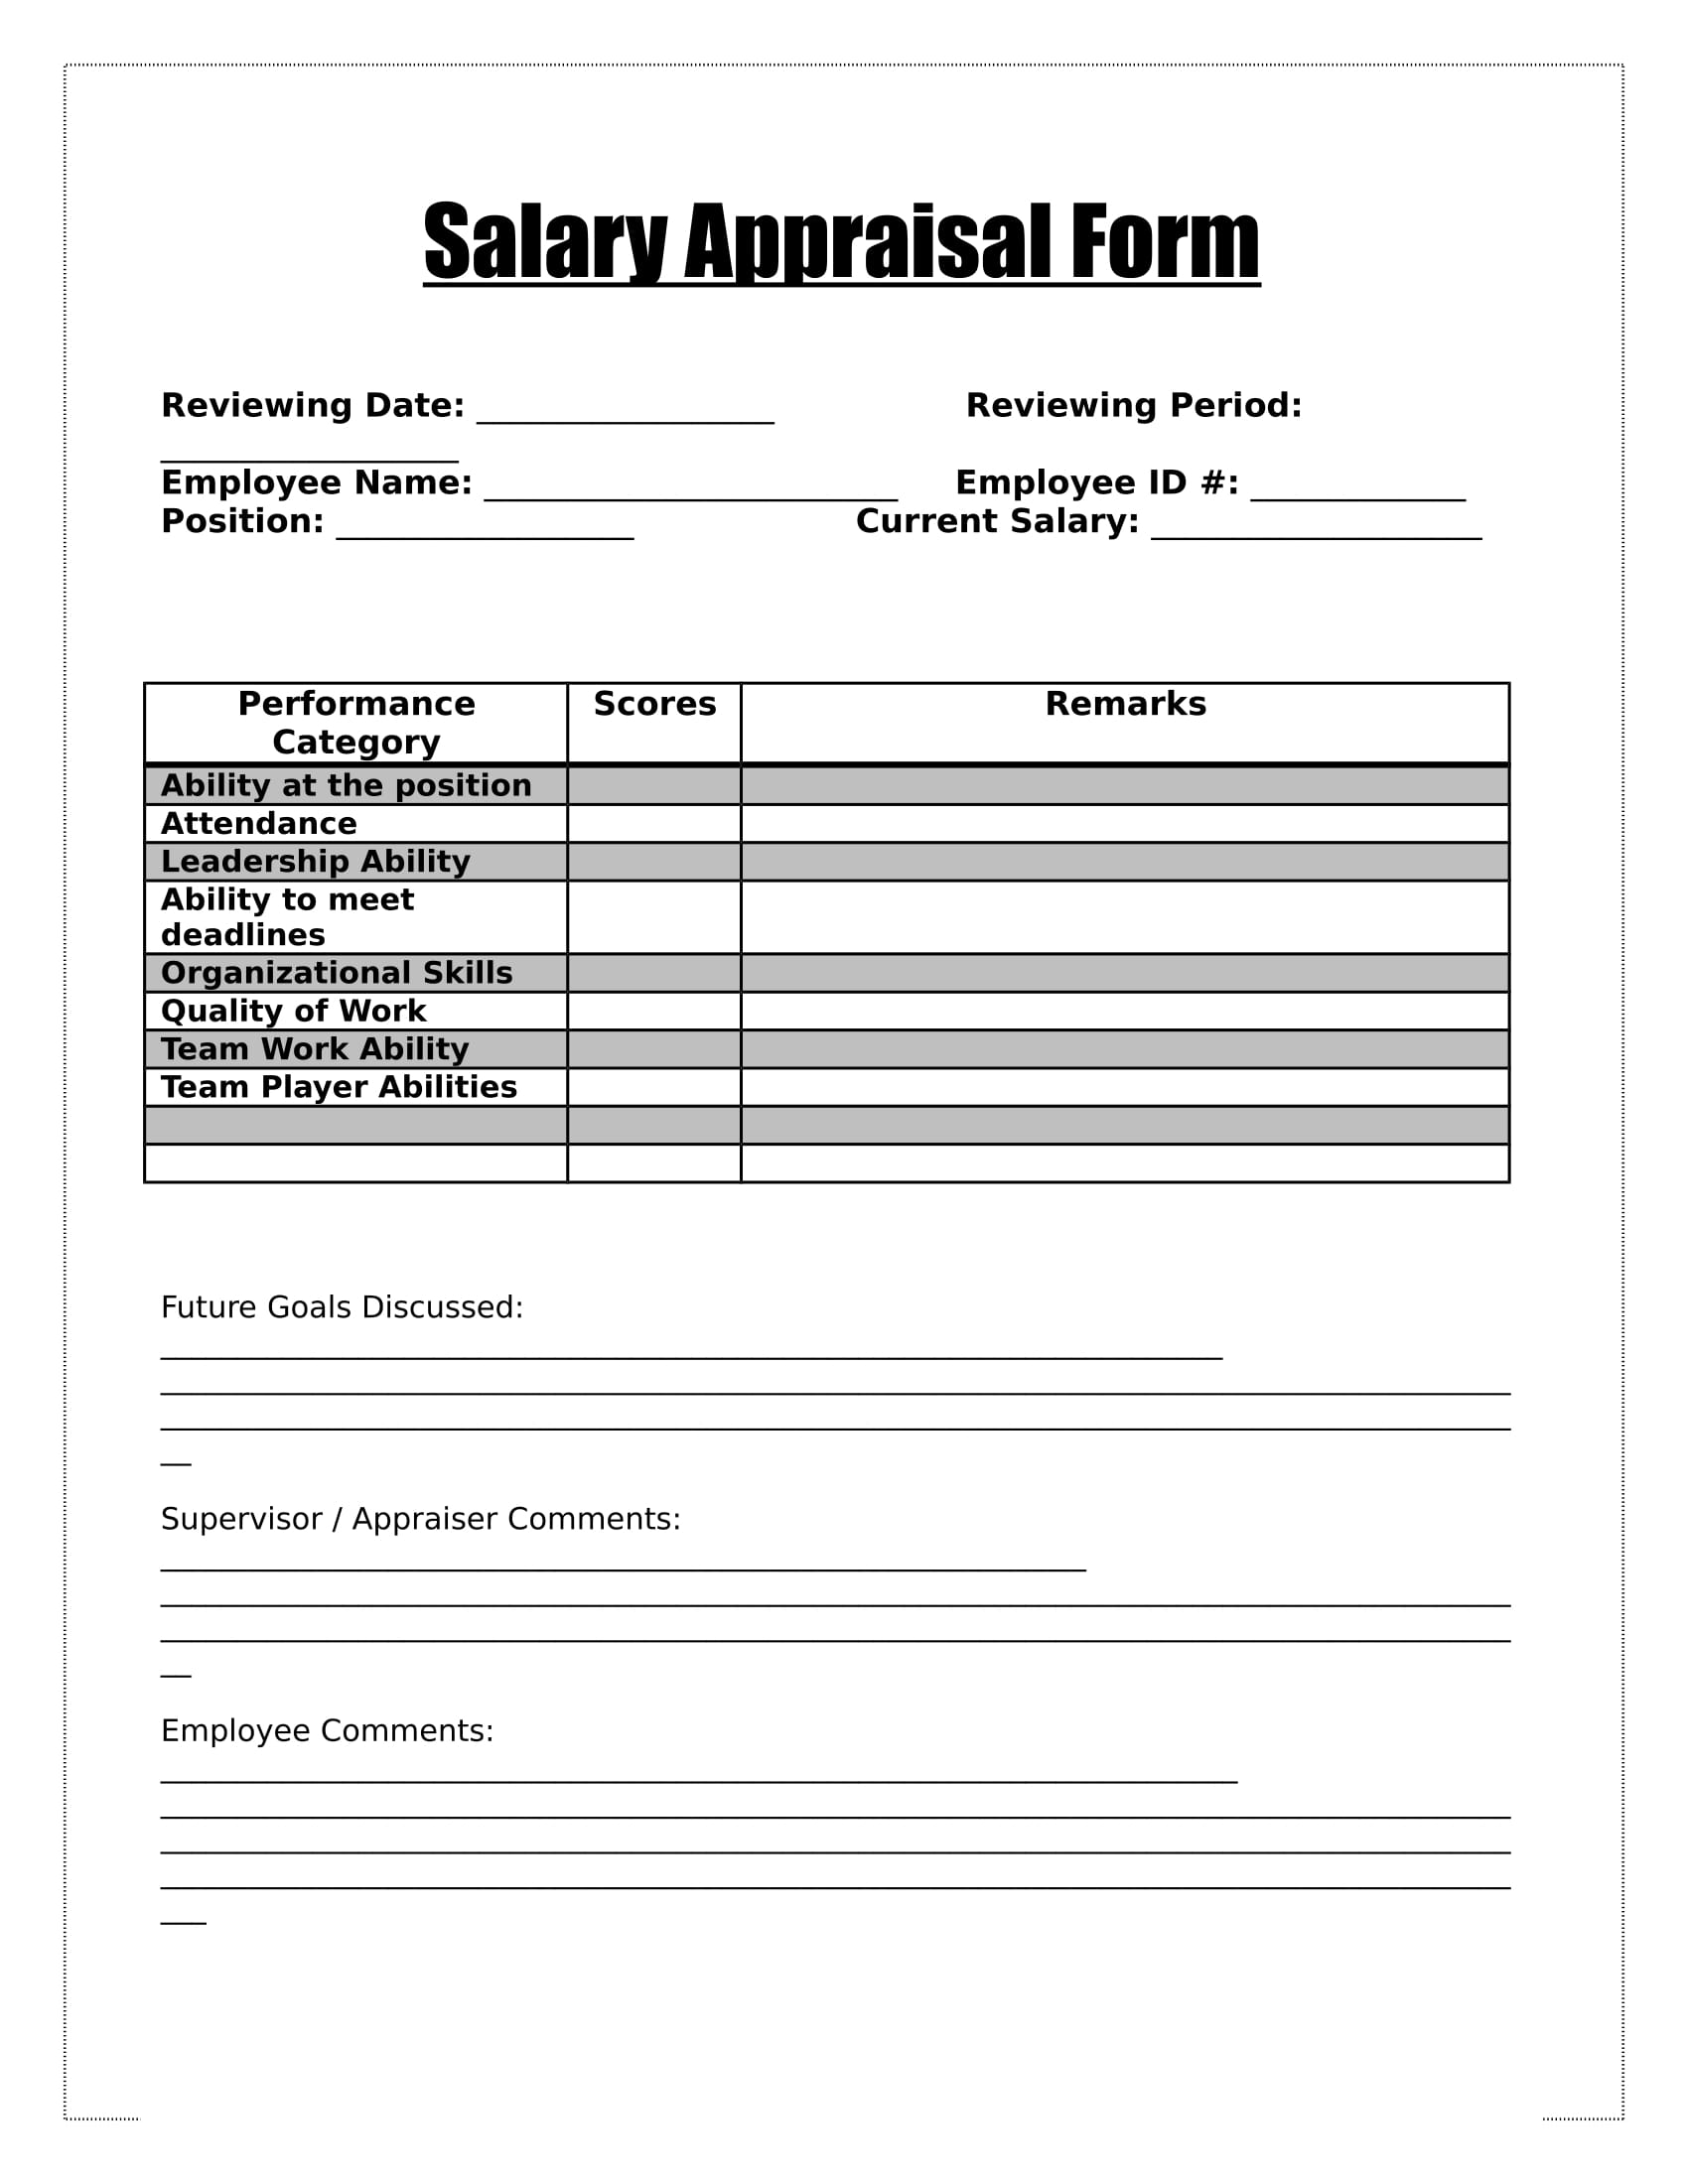 Simple Salary Appraisal Form Amazing Ideas